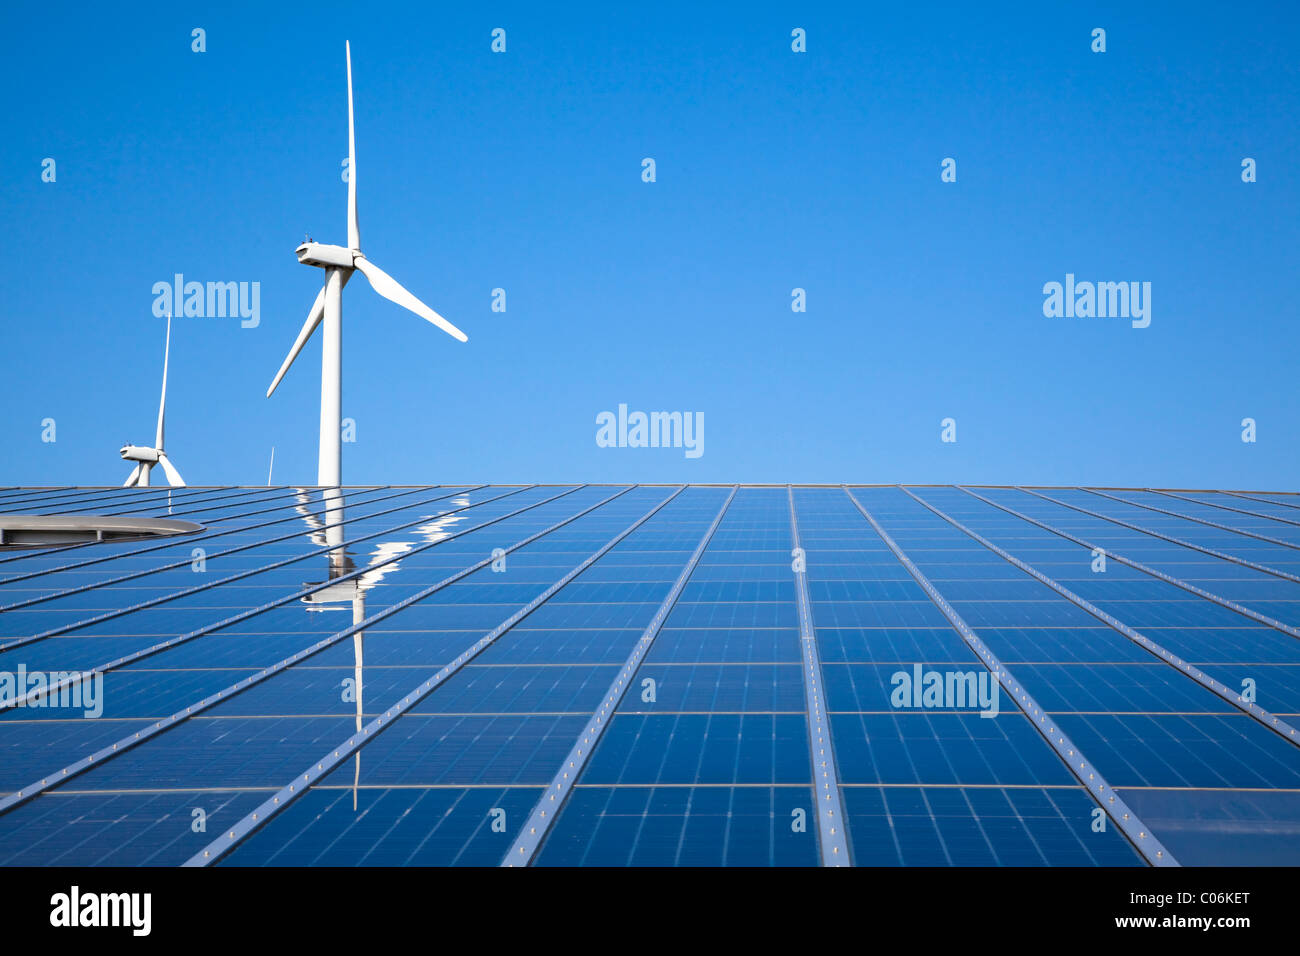 Solar and wind energy with clear sky - Stock Image